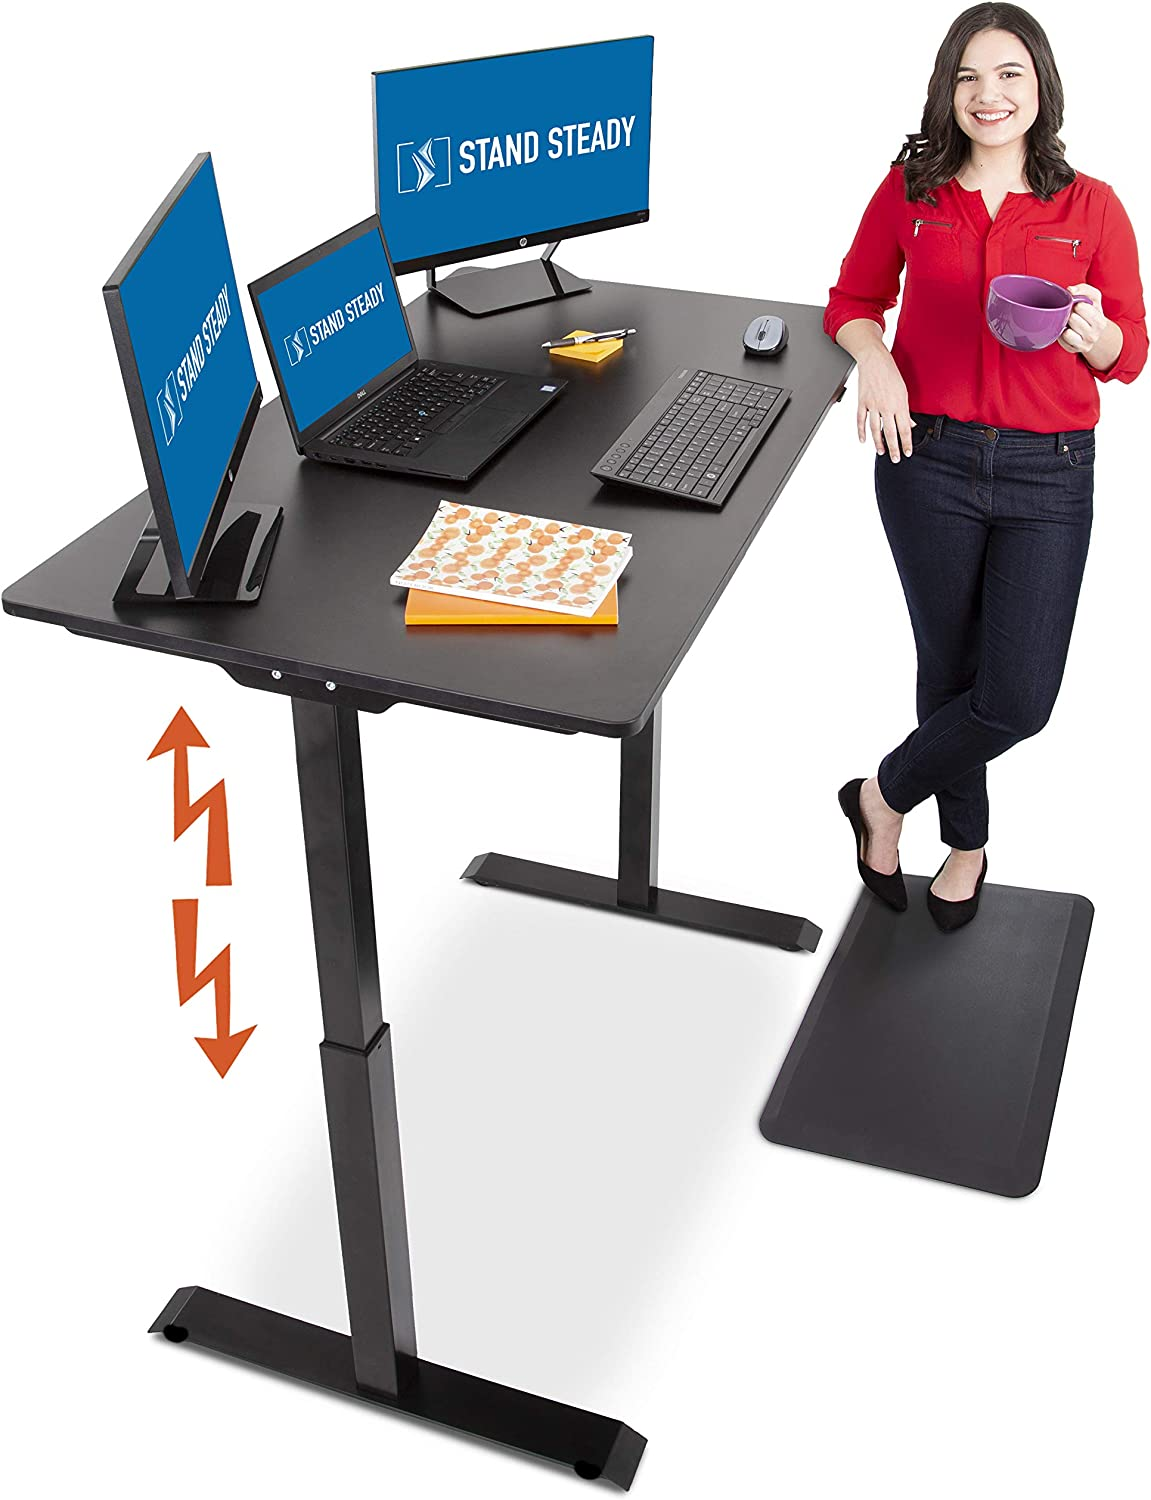 Stand Steady Tranzendesk Power 48 Inch Standing Desk Electric, Height Adjustable, Sit to Stand Up Workstation Quietly Go from Sitting to Standing w Easy Tap Lever 27.5 x 47.5 Black